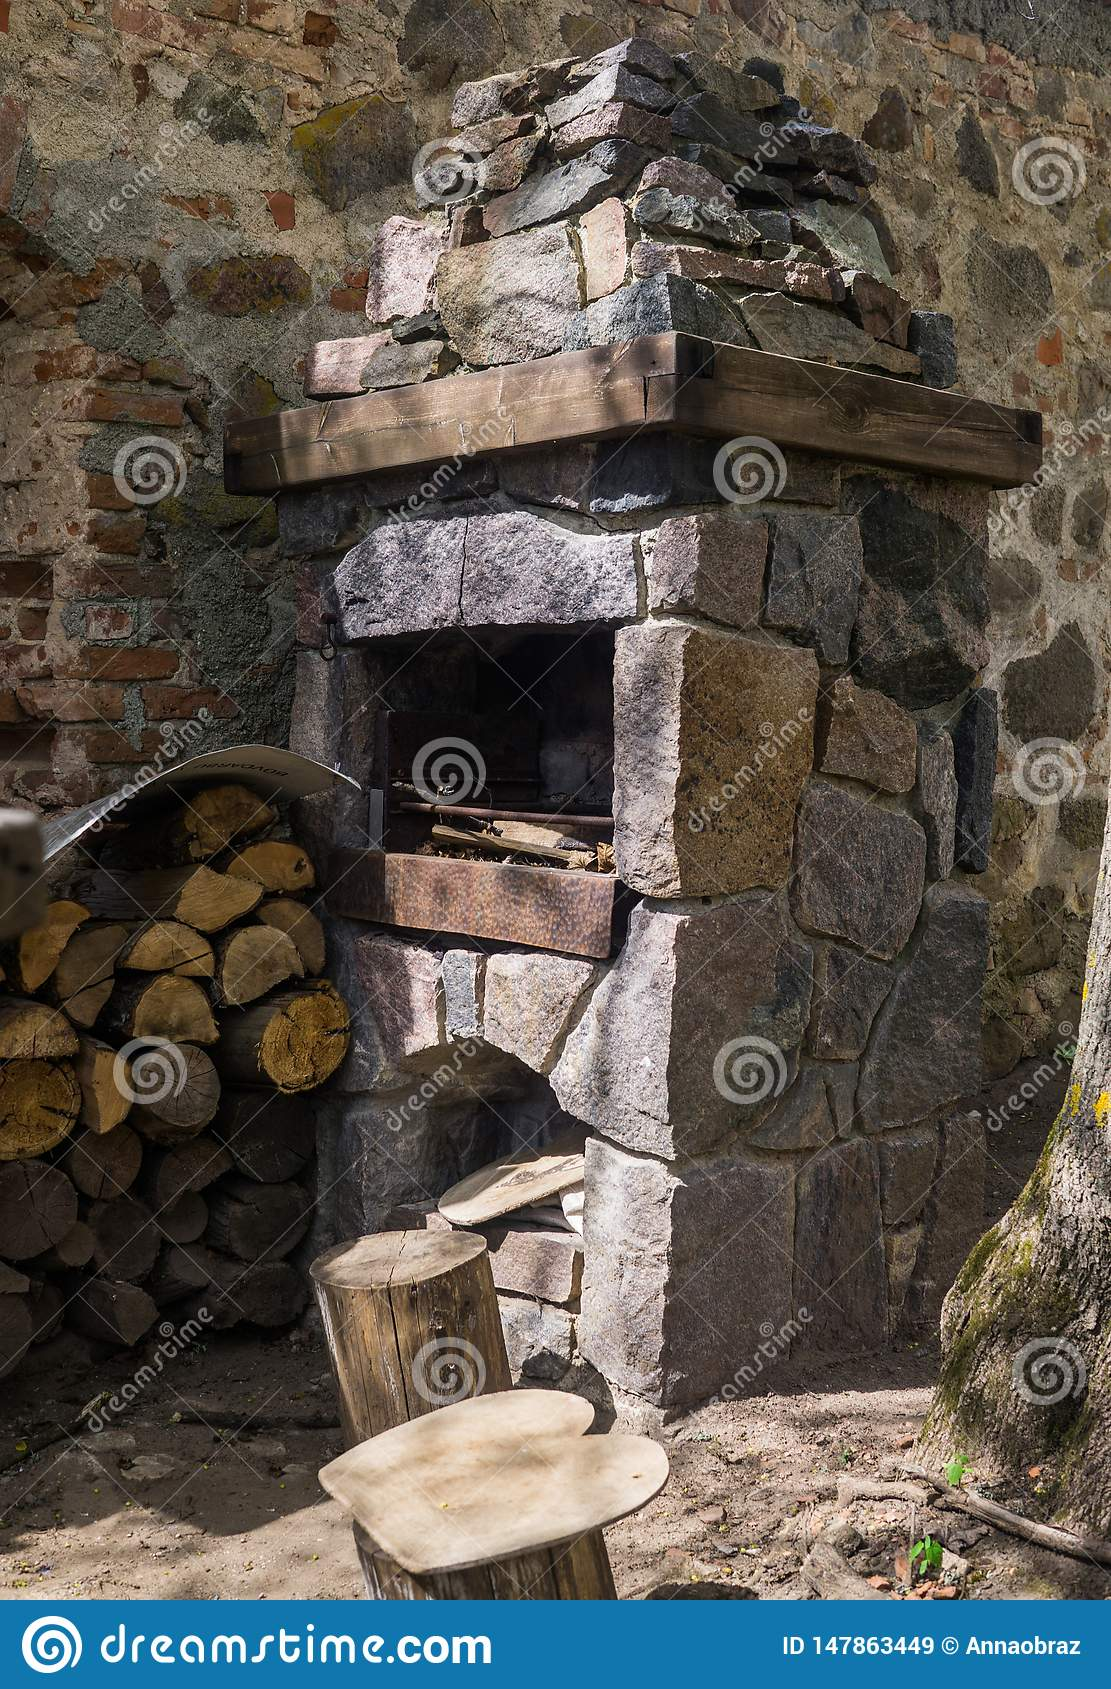 Stone fireplace for frying meat, laid out on the street against the wall, along with firewood